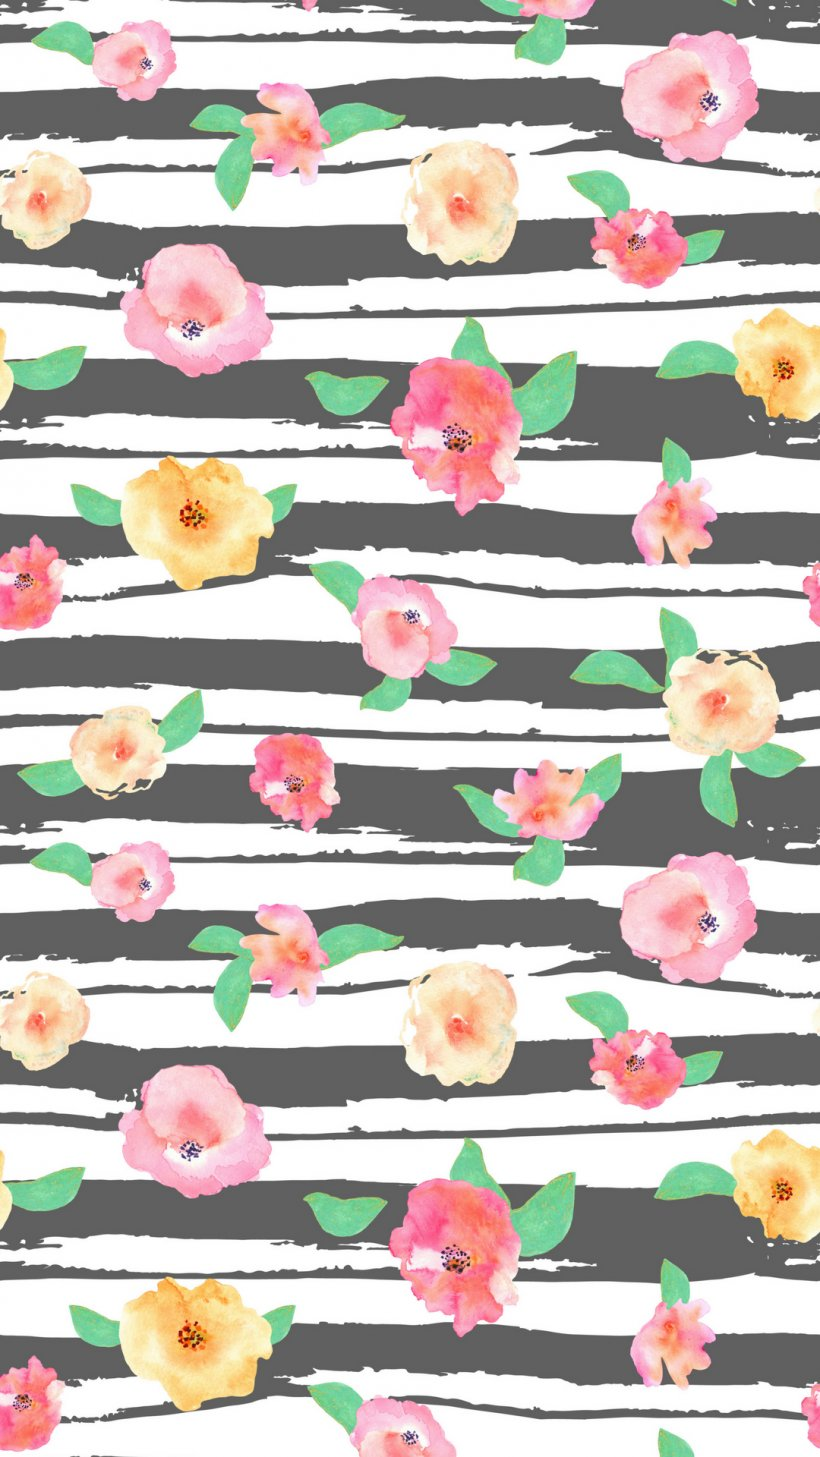 Flower Desktop Wallpaper Watercolor Painting Wallpaper Png